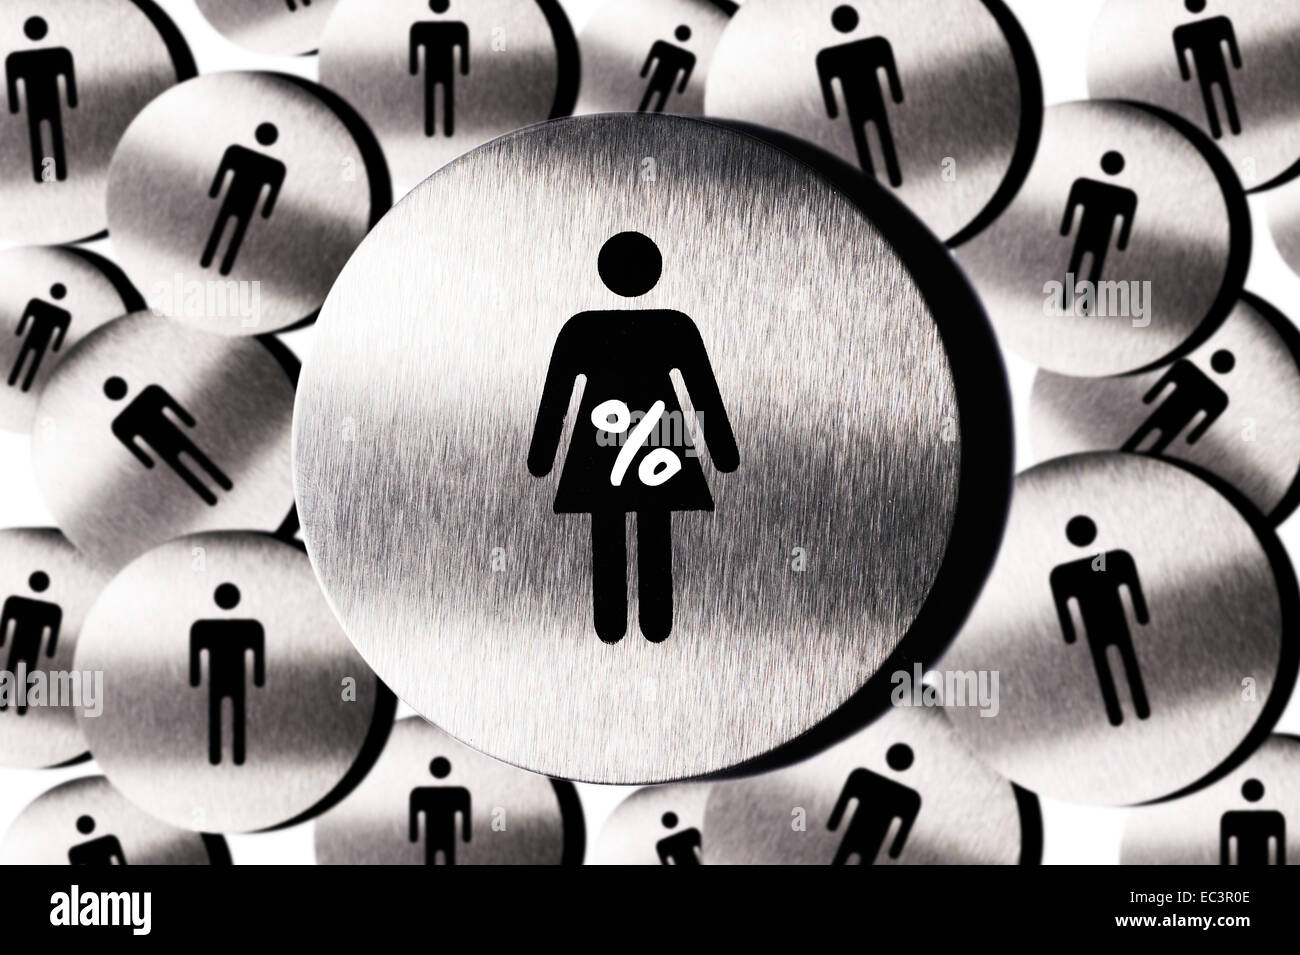 Pictogram of woman and man, women s quota - Stock Image